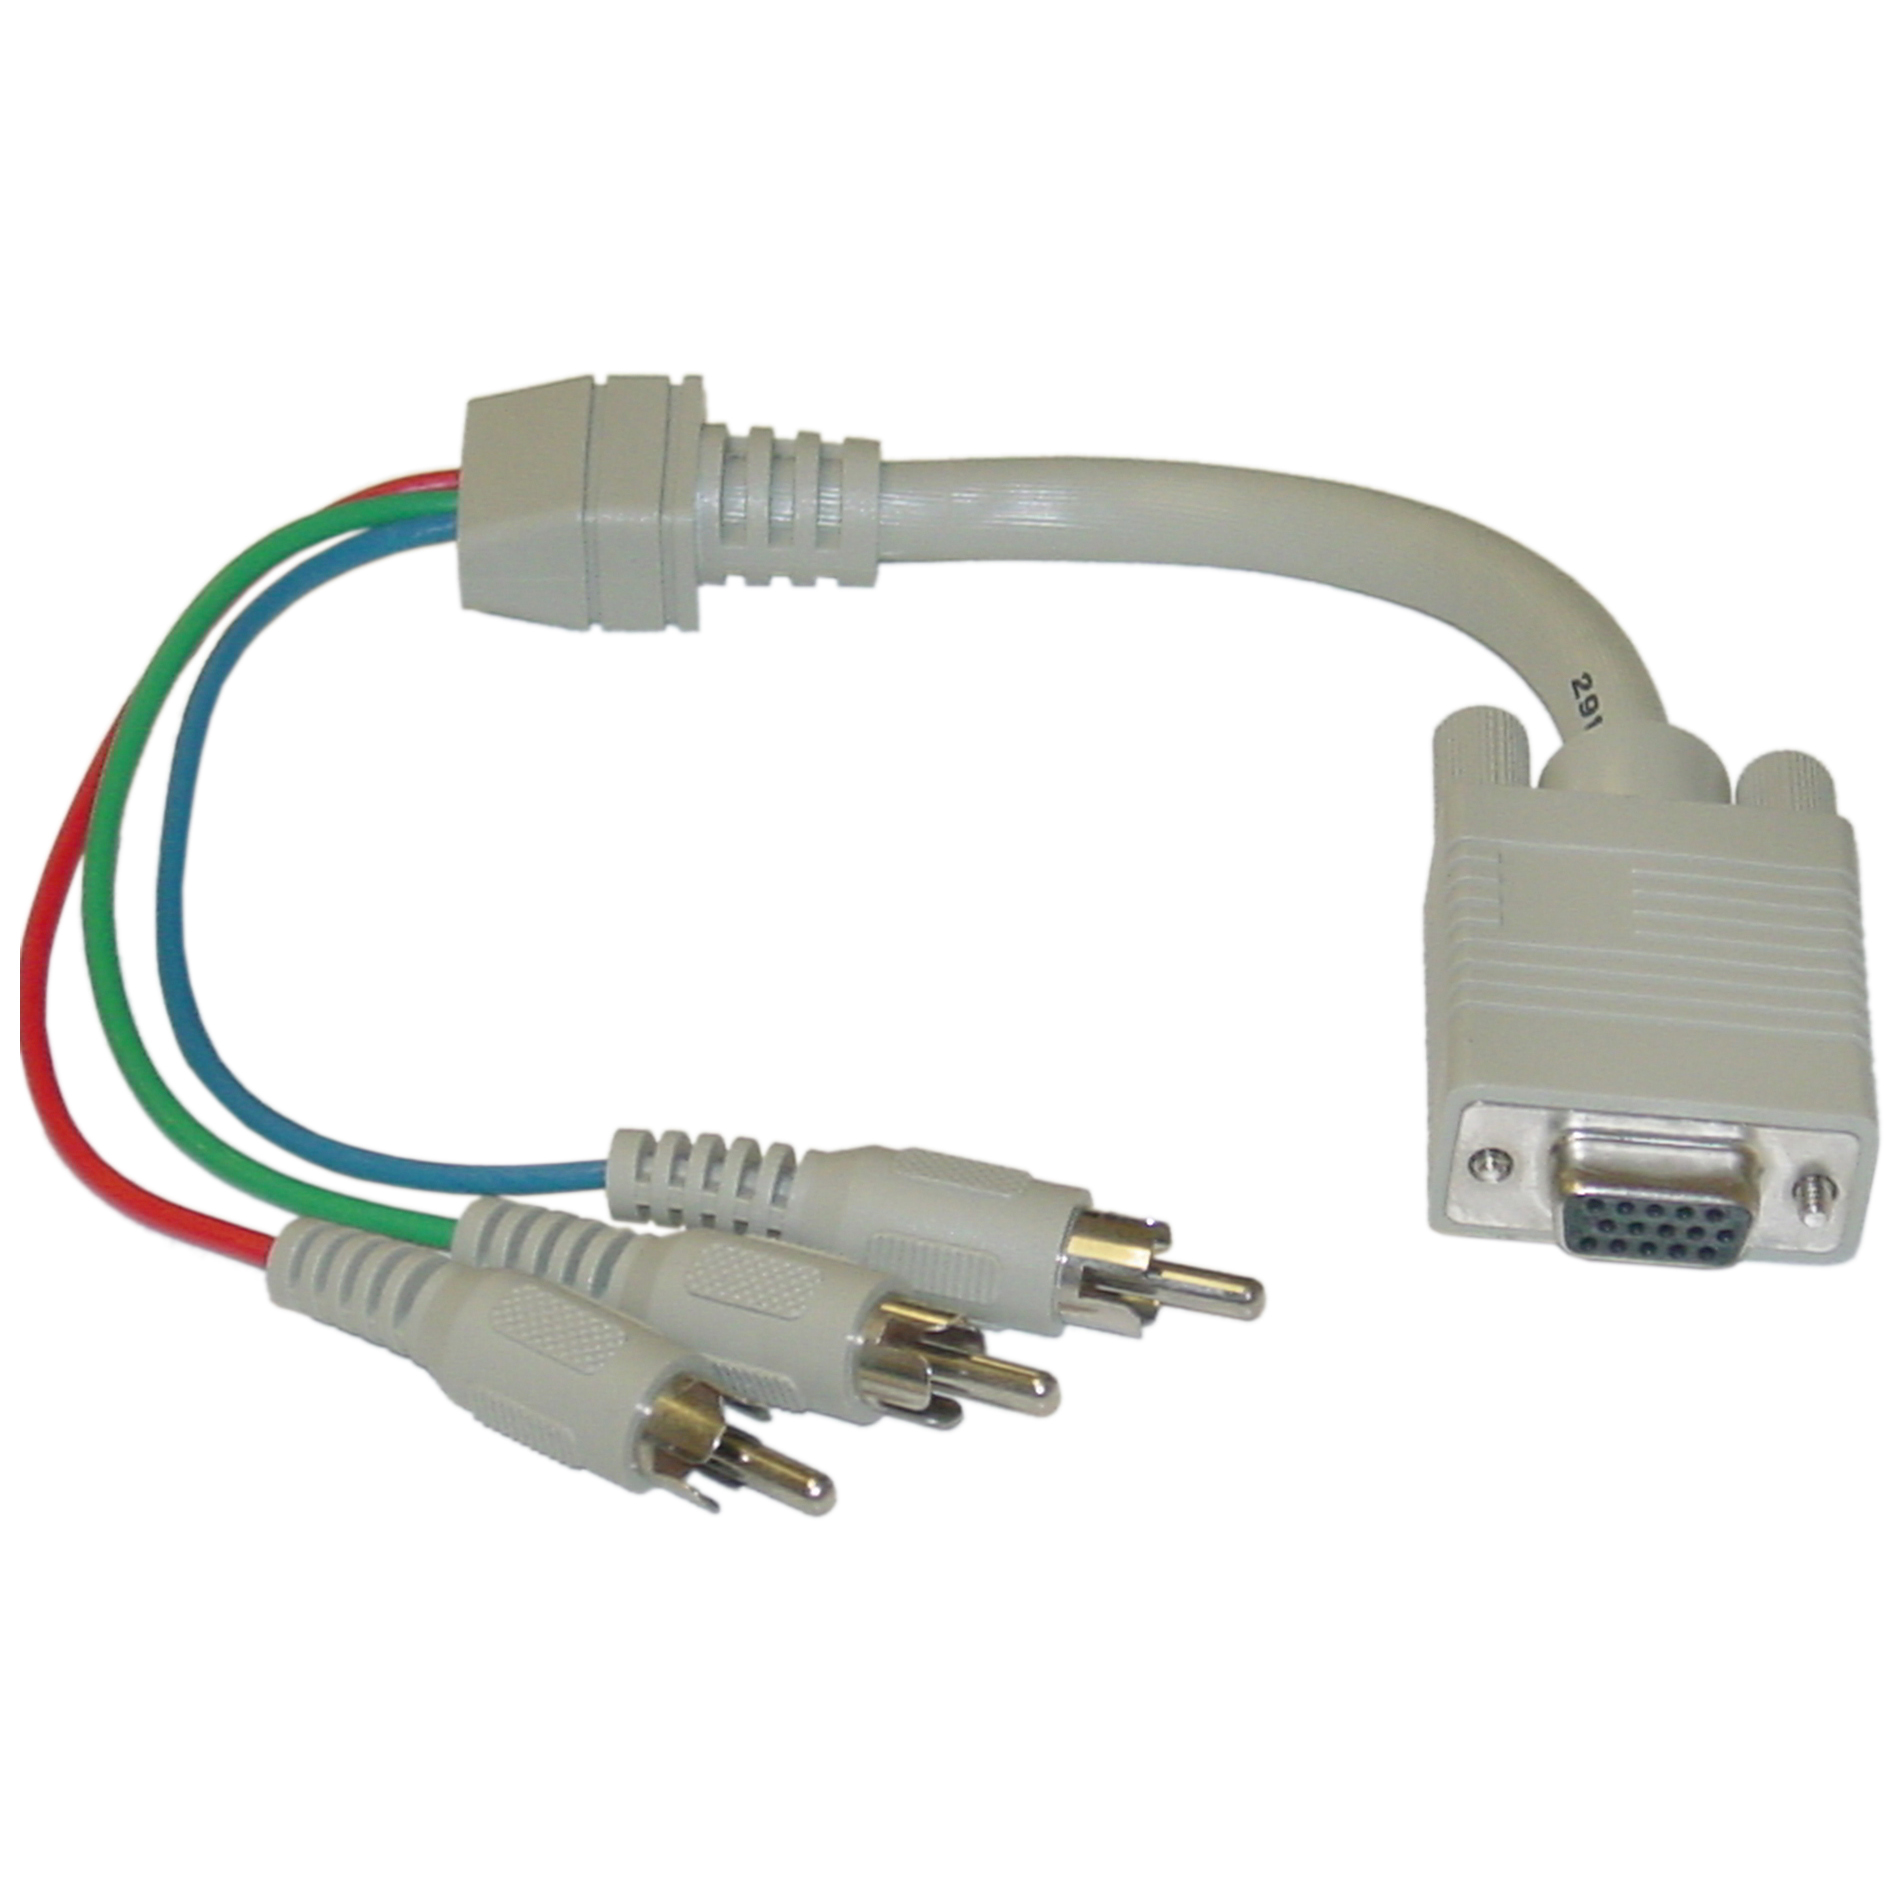 hight resolution of vga to component video adapter hd15 female to 3 x rca male rgb